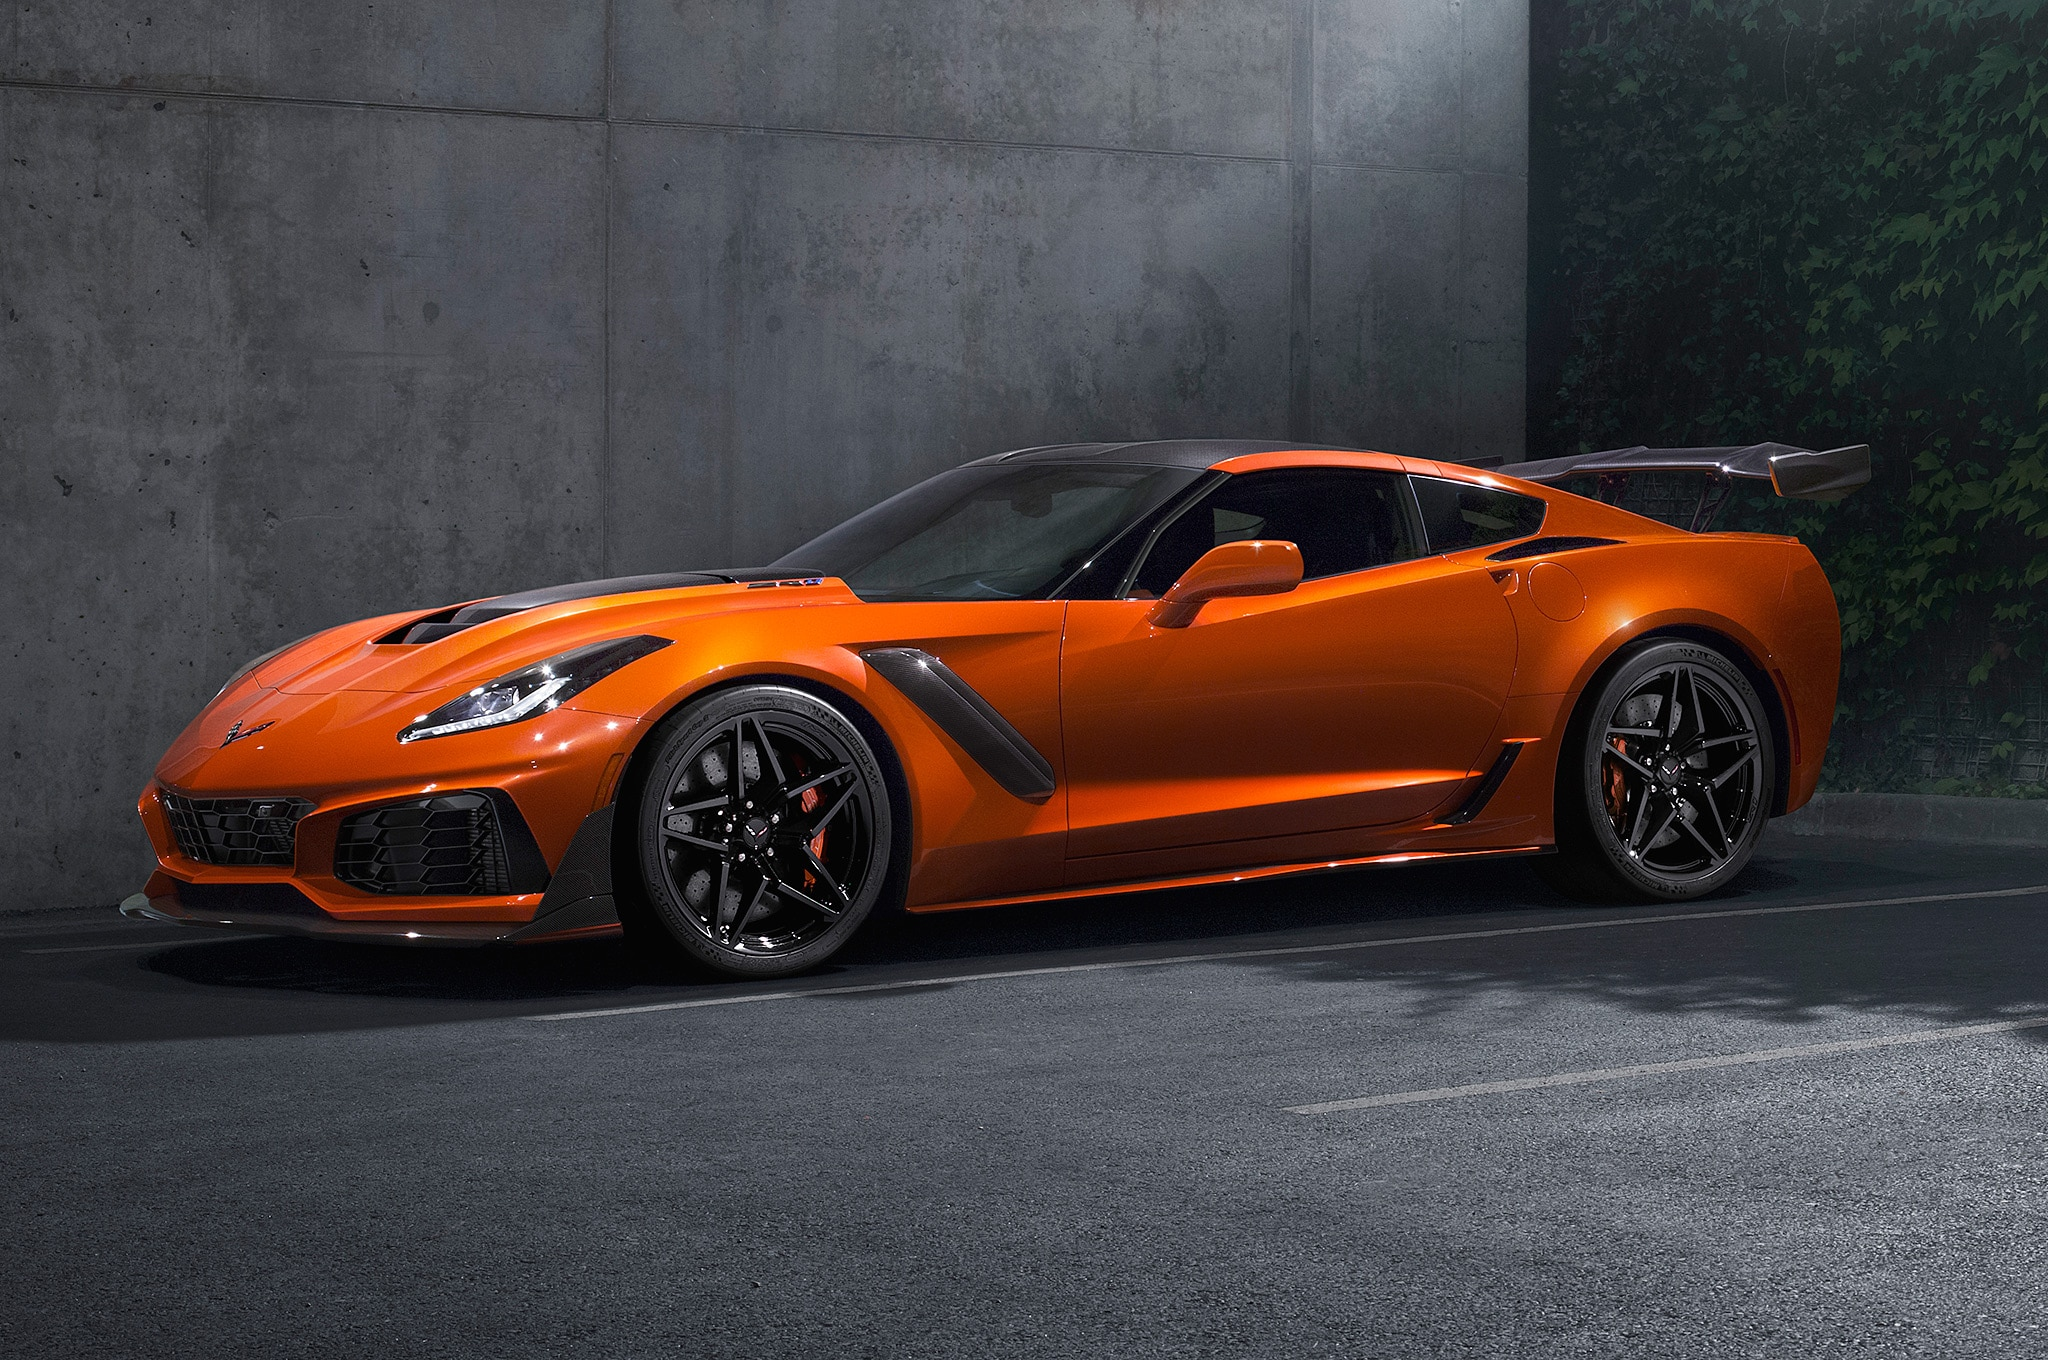 755 Horsepower 2019 Chevy Corvette Zr1 Is The Fastest Most Powerful